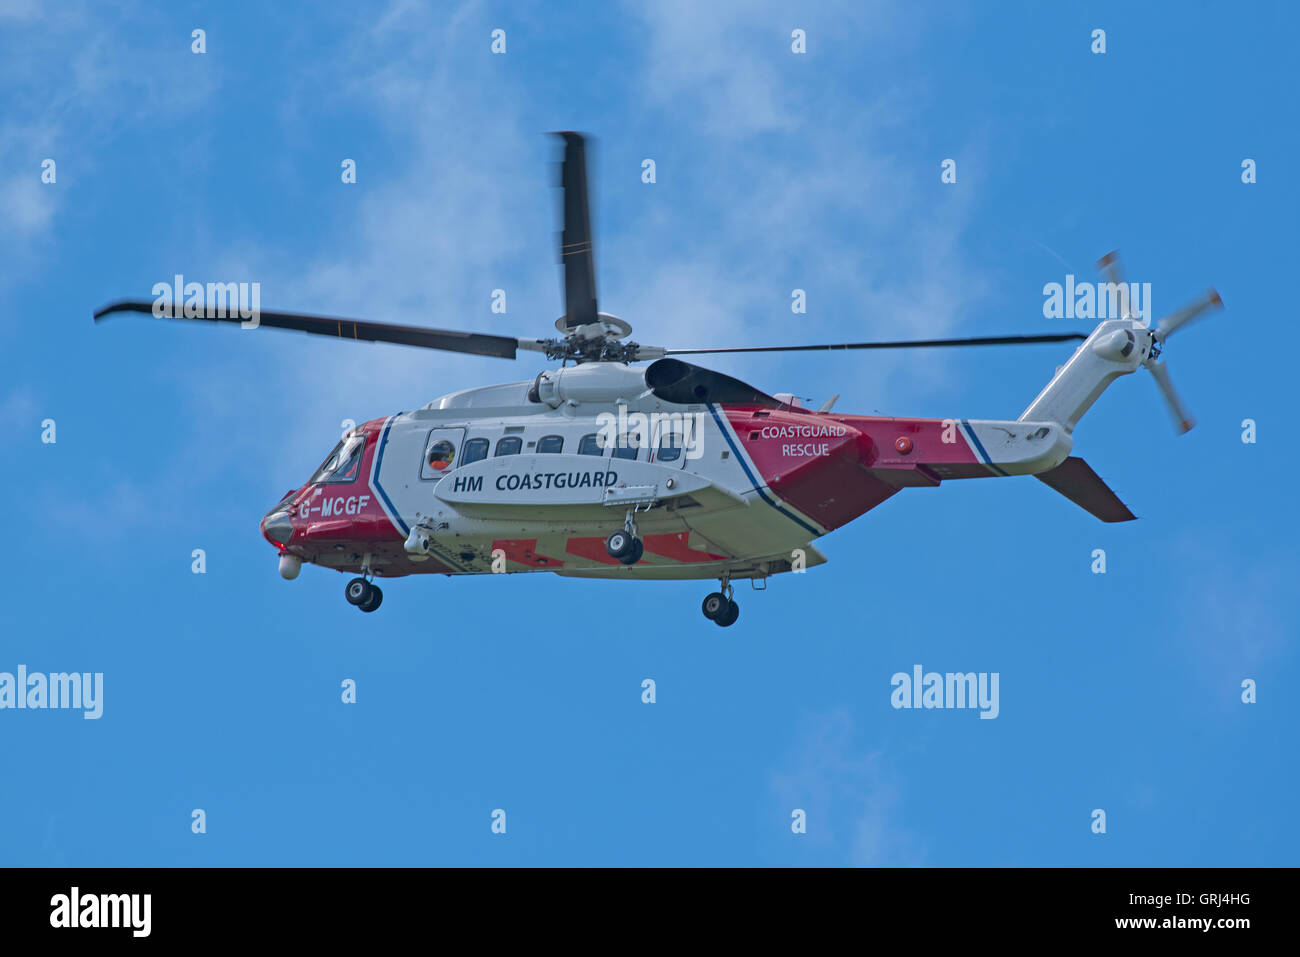 Sikorsky S-92A Coastguard SAR Helicopter (G-MCGF) based at Inverness. SCO 11,233. Stock Photo